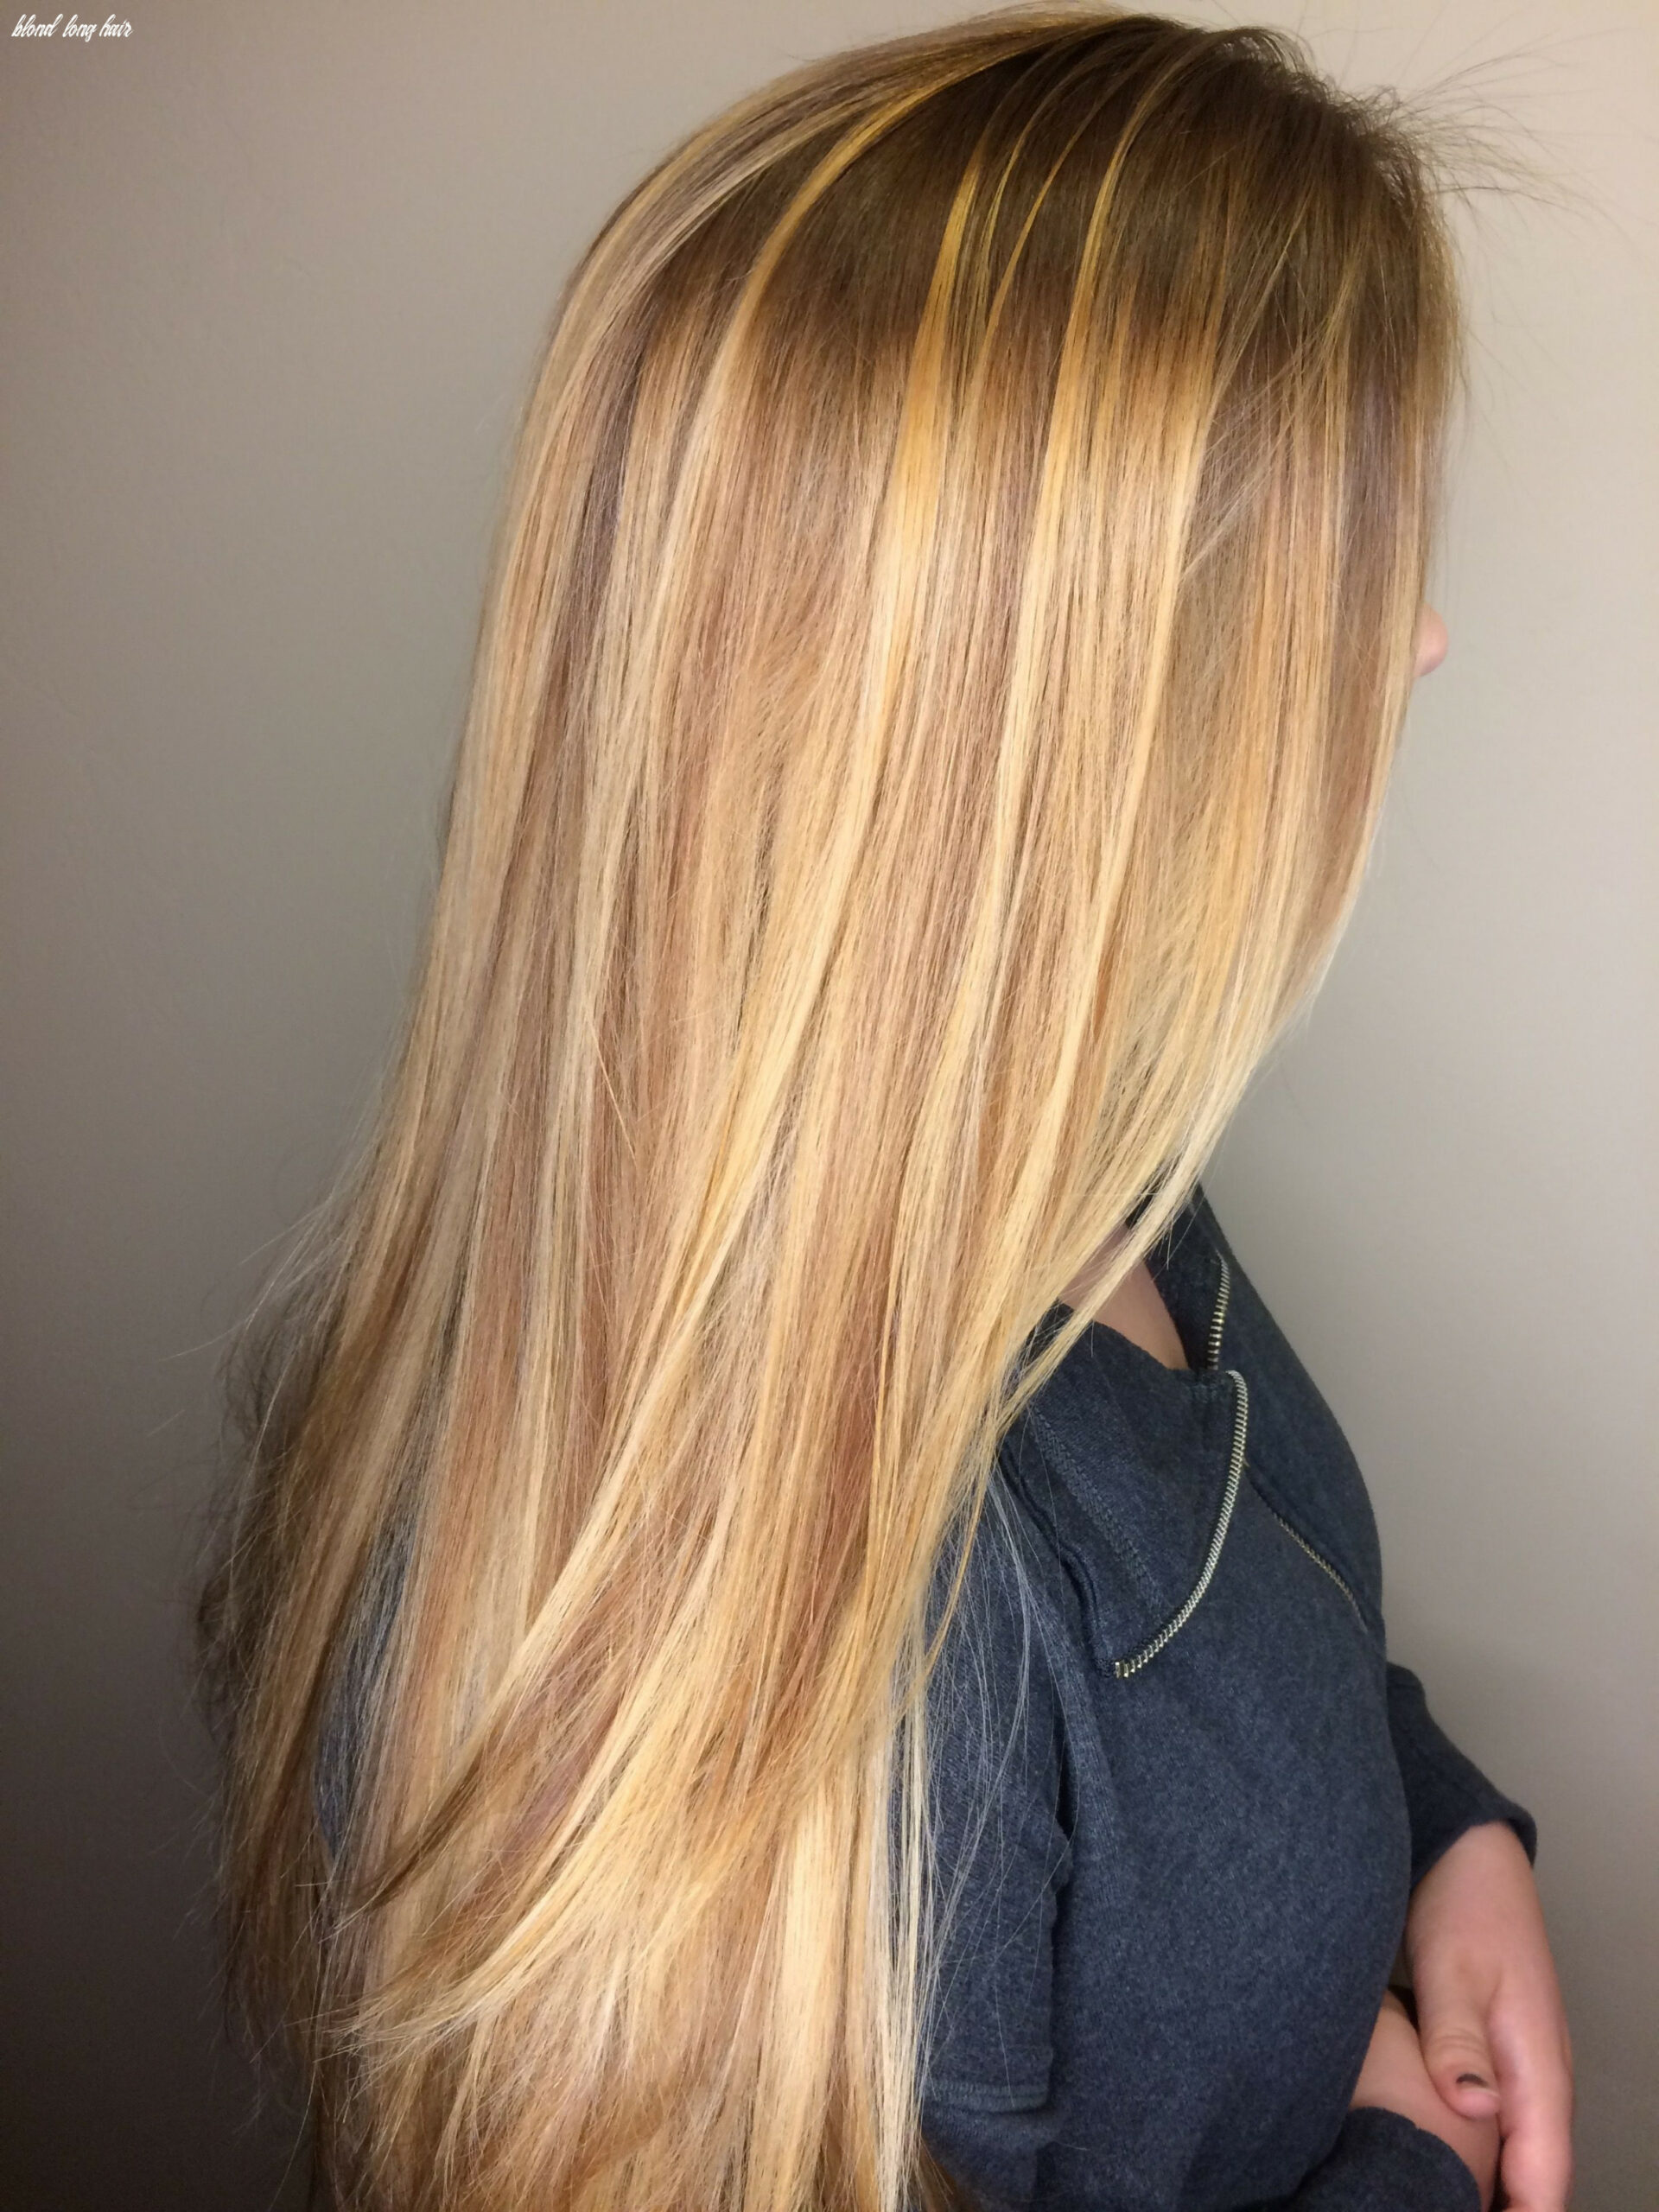 Honey Blonde / Golden Blonde / Long Hair / Balayage | Frisuren ...